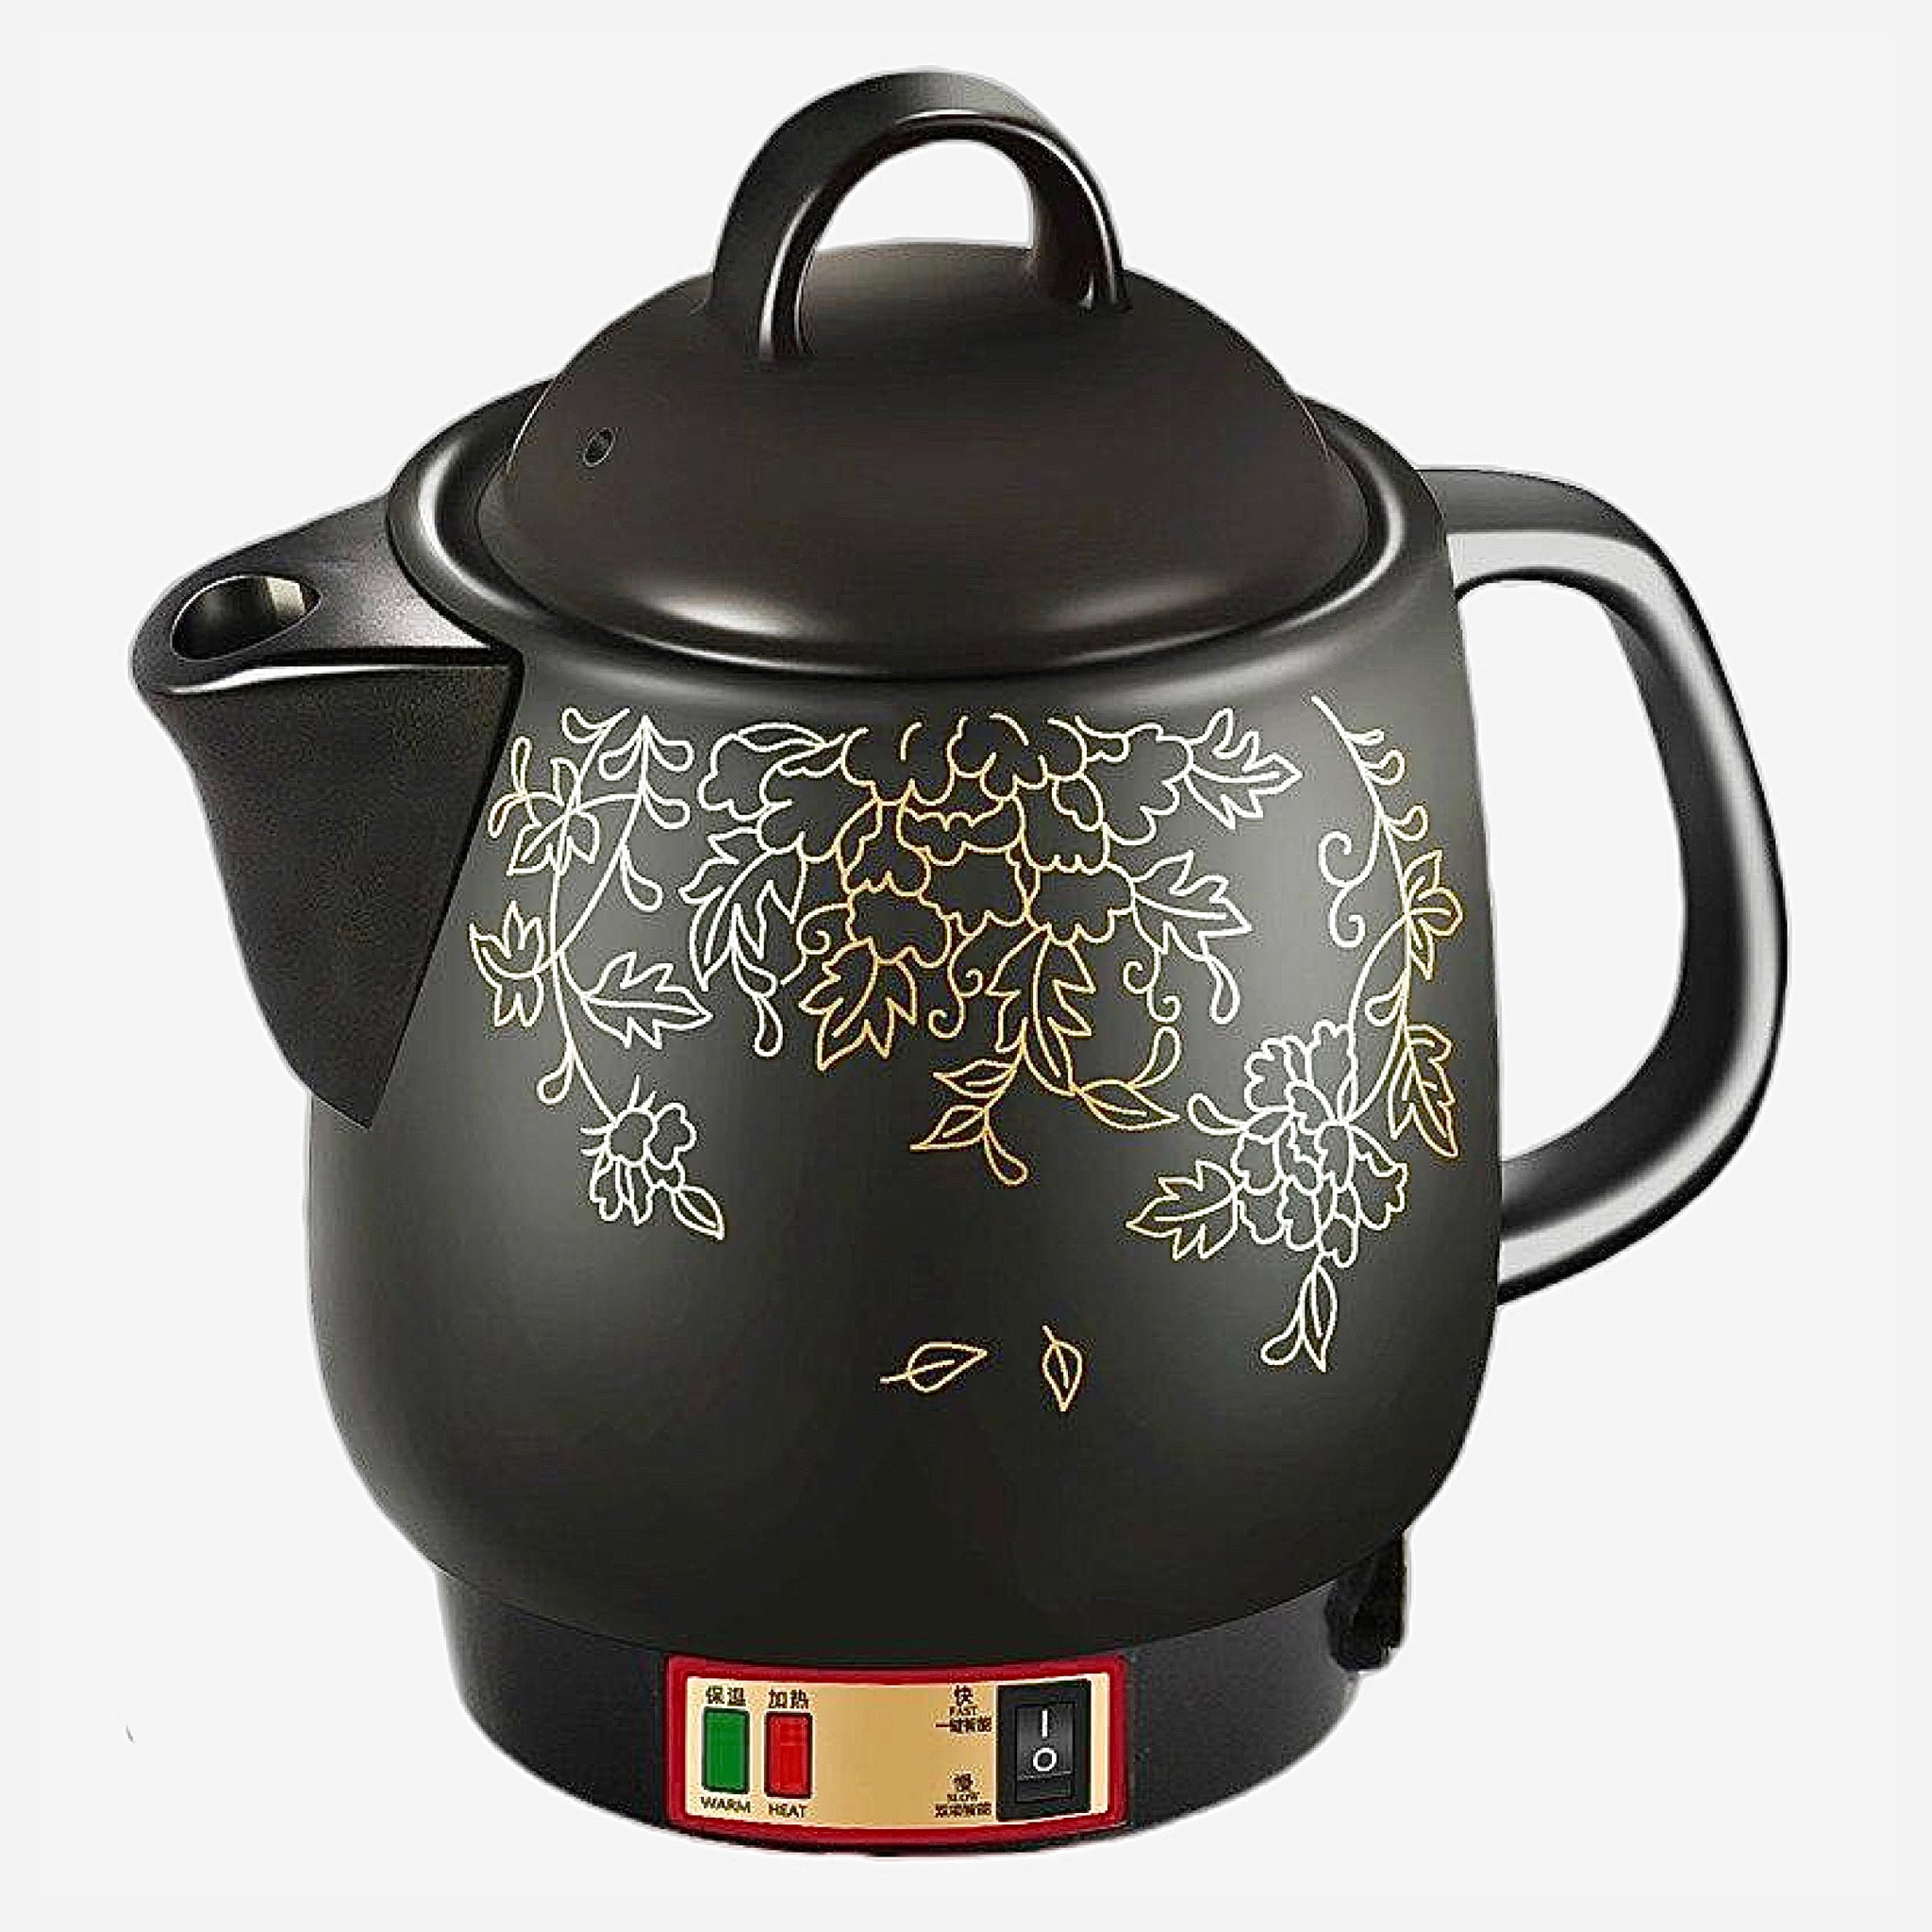 Electric kettle Full automatic decoction of Chinese medicine pot ceramic casserole Trend